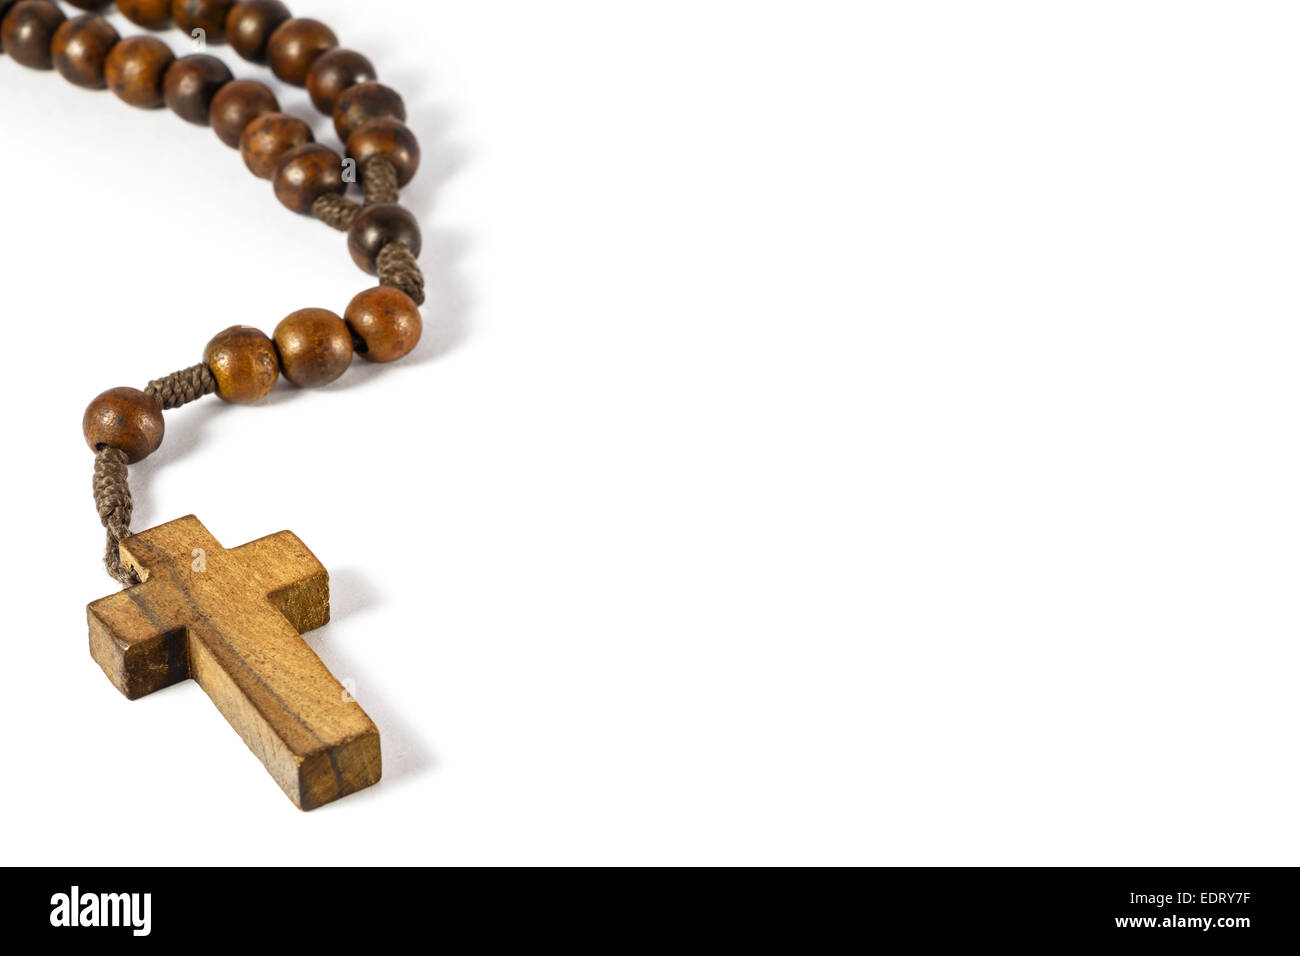 hight resolution of wood rosary with cross at left border and blank area at right side white background